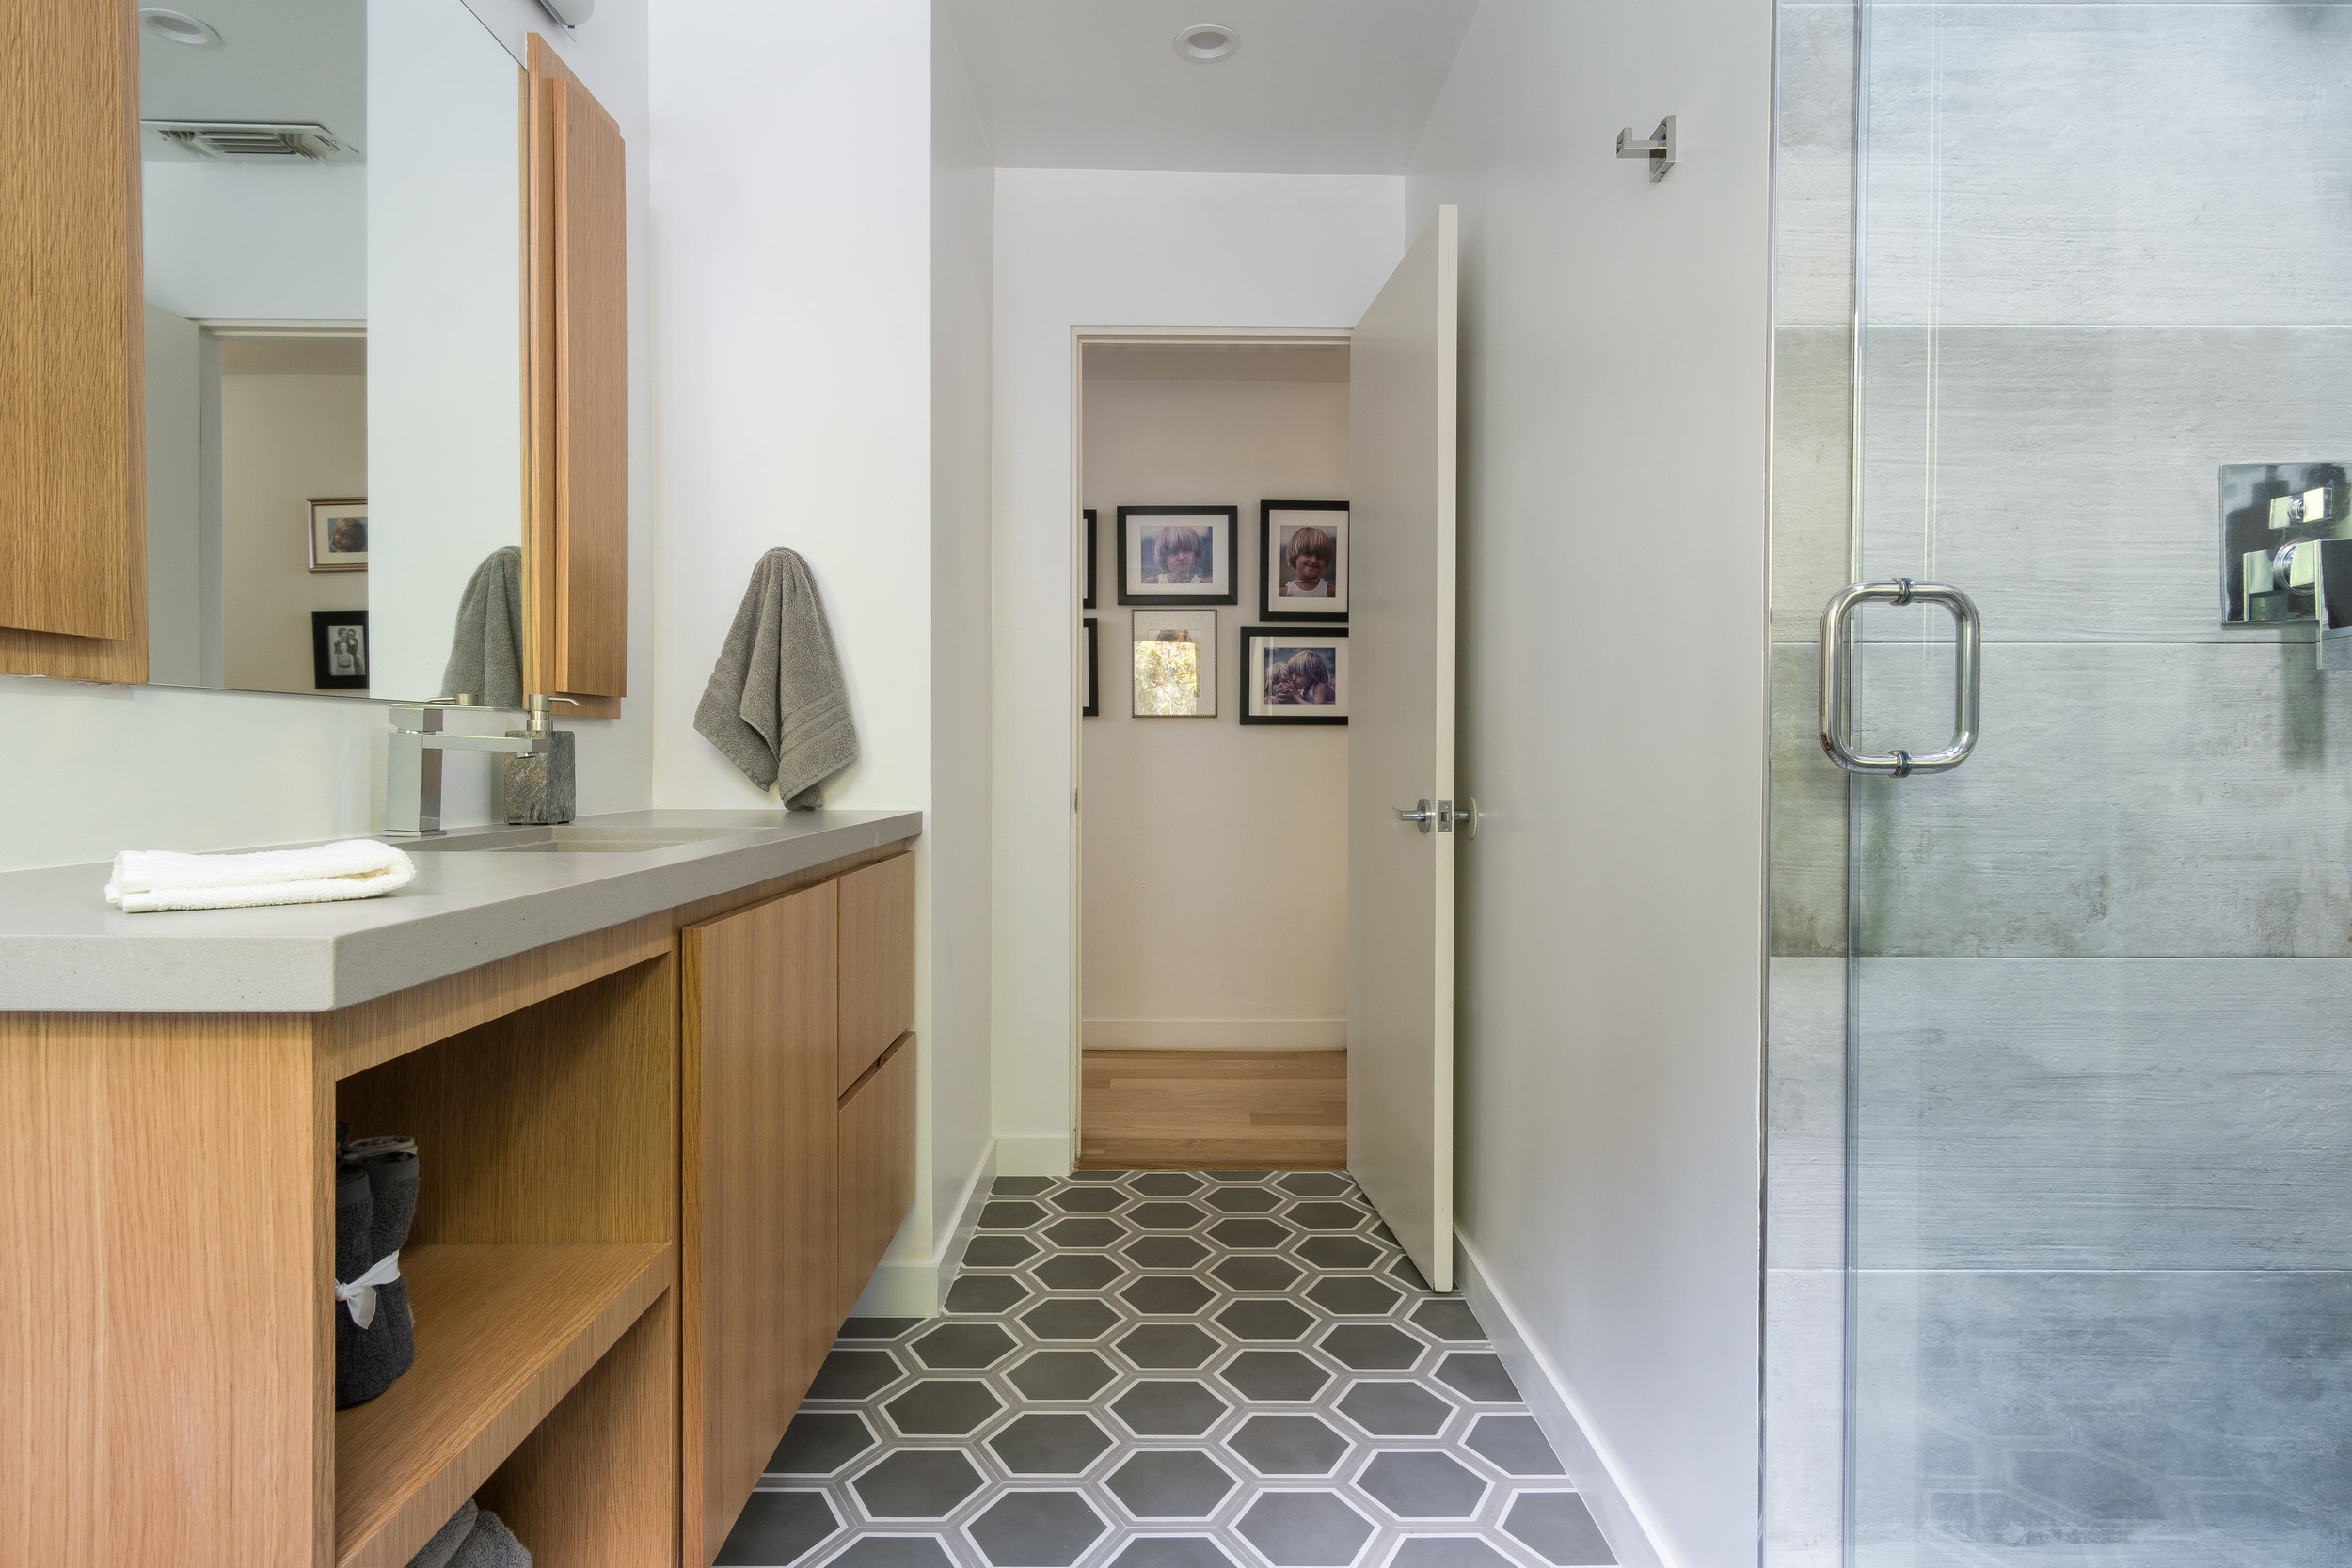 Delivered photo of the bathroom remodel ©Ryan Carr - Legacy Listing Photography - 2017